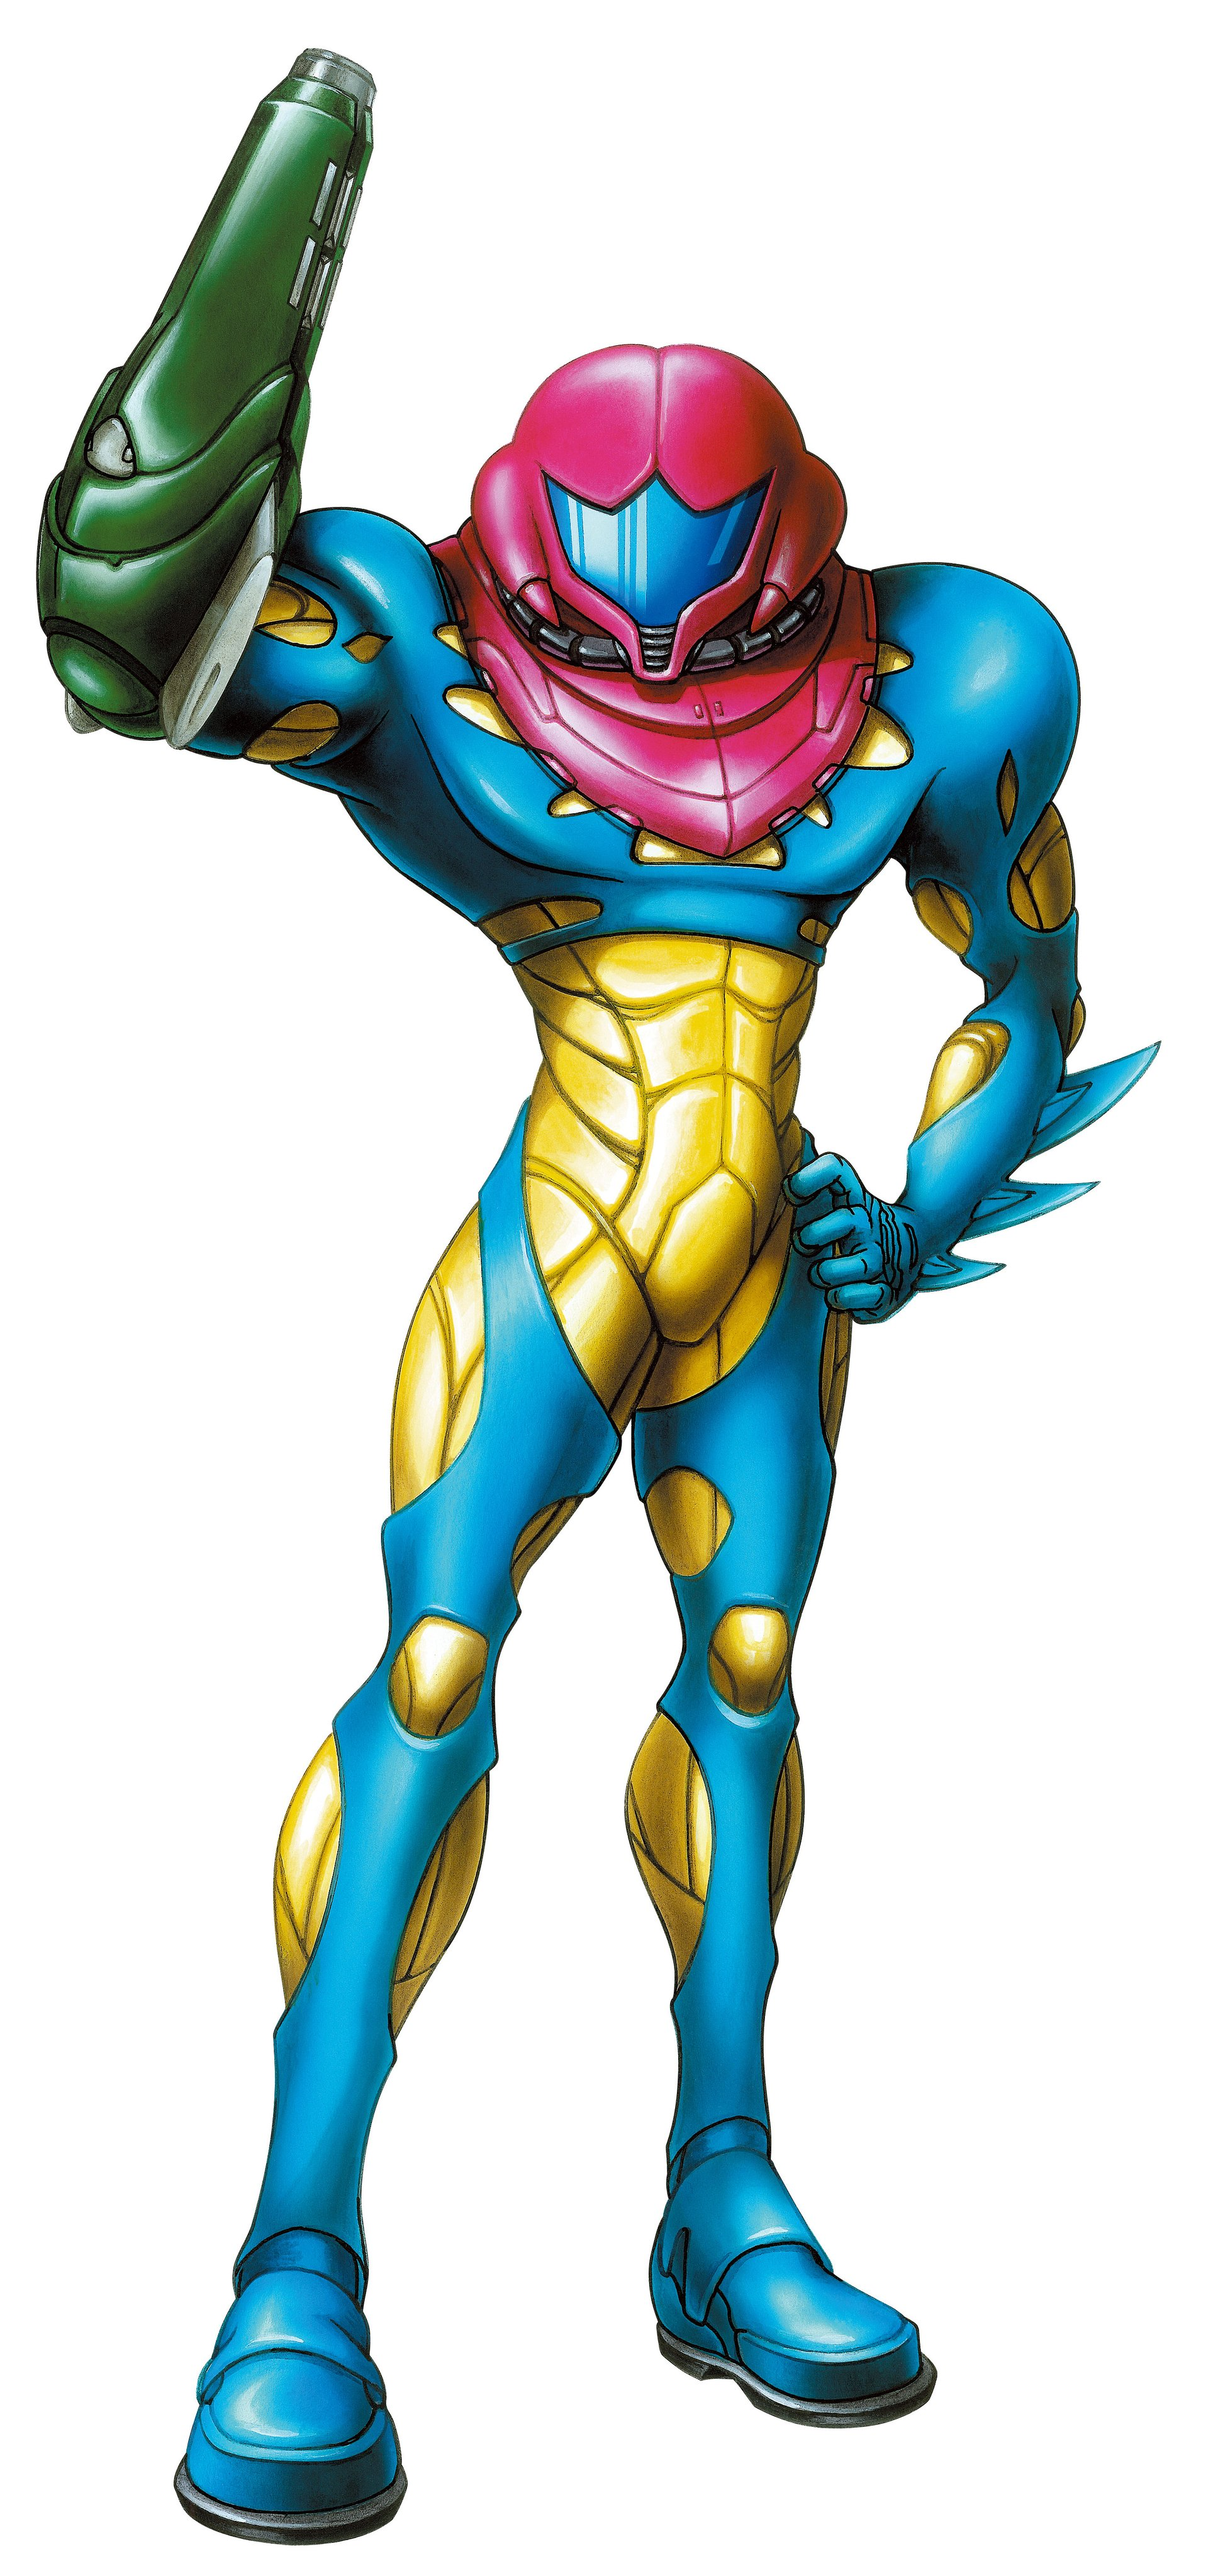 Metroid Fusion revision